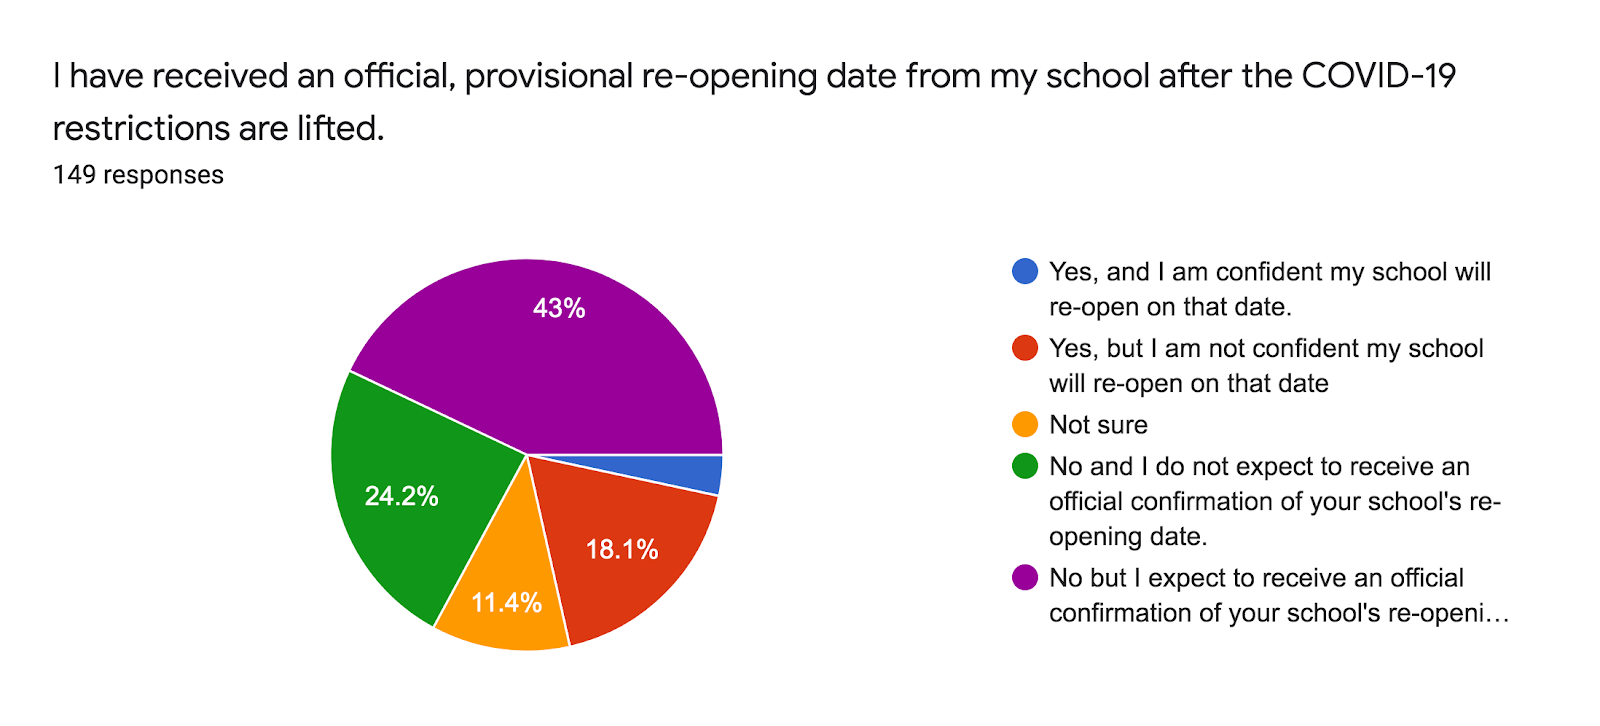 Forms response chart. Question title: I have received an official, provisional re-opening date from my school after the COVID-19 restrictions are lifted.. Number of responses: 149 responses.